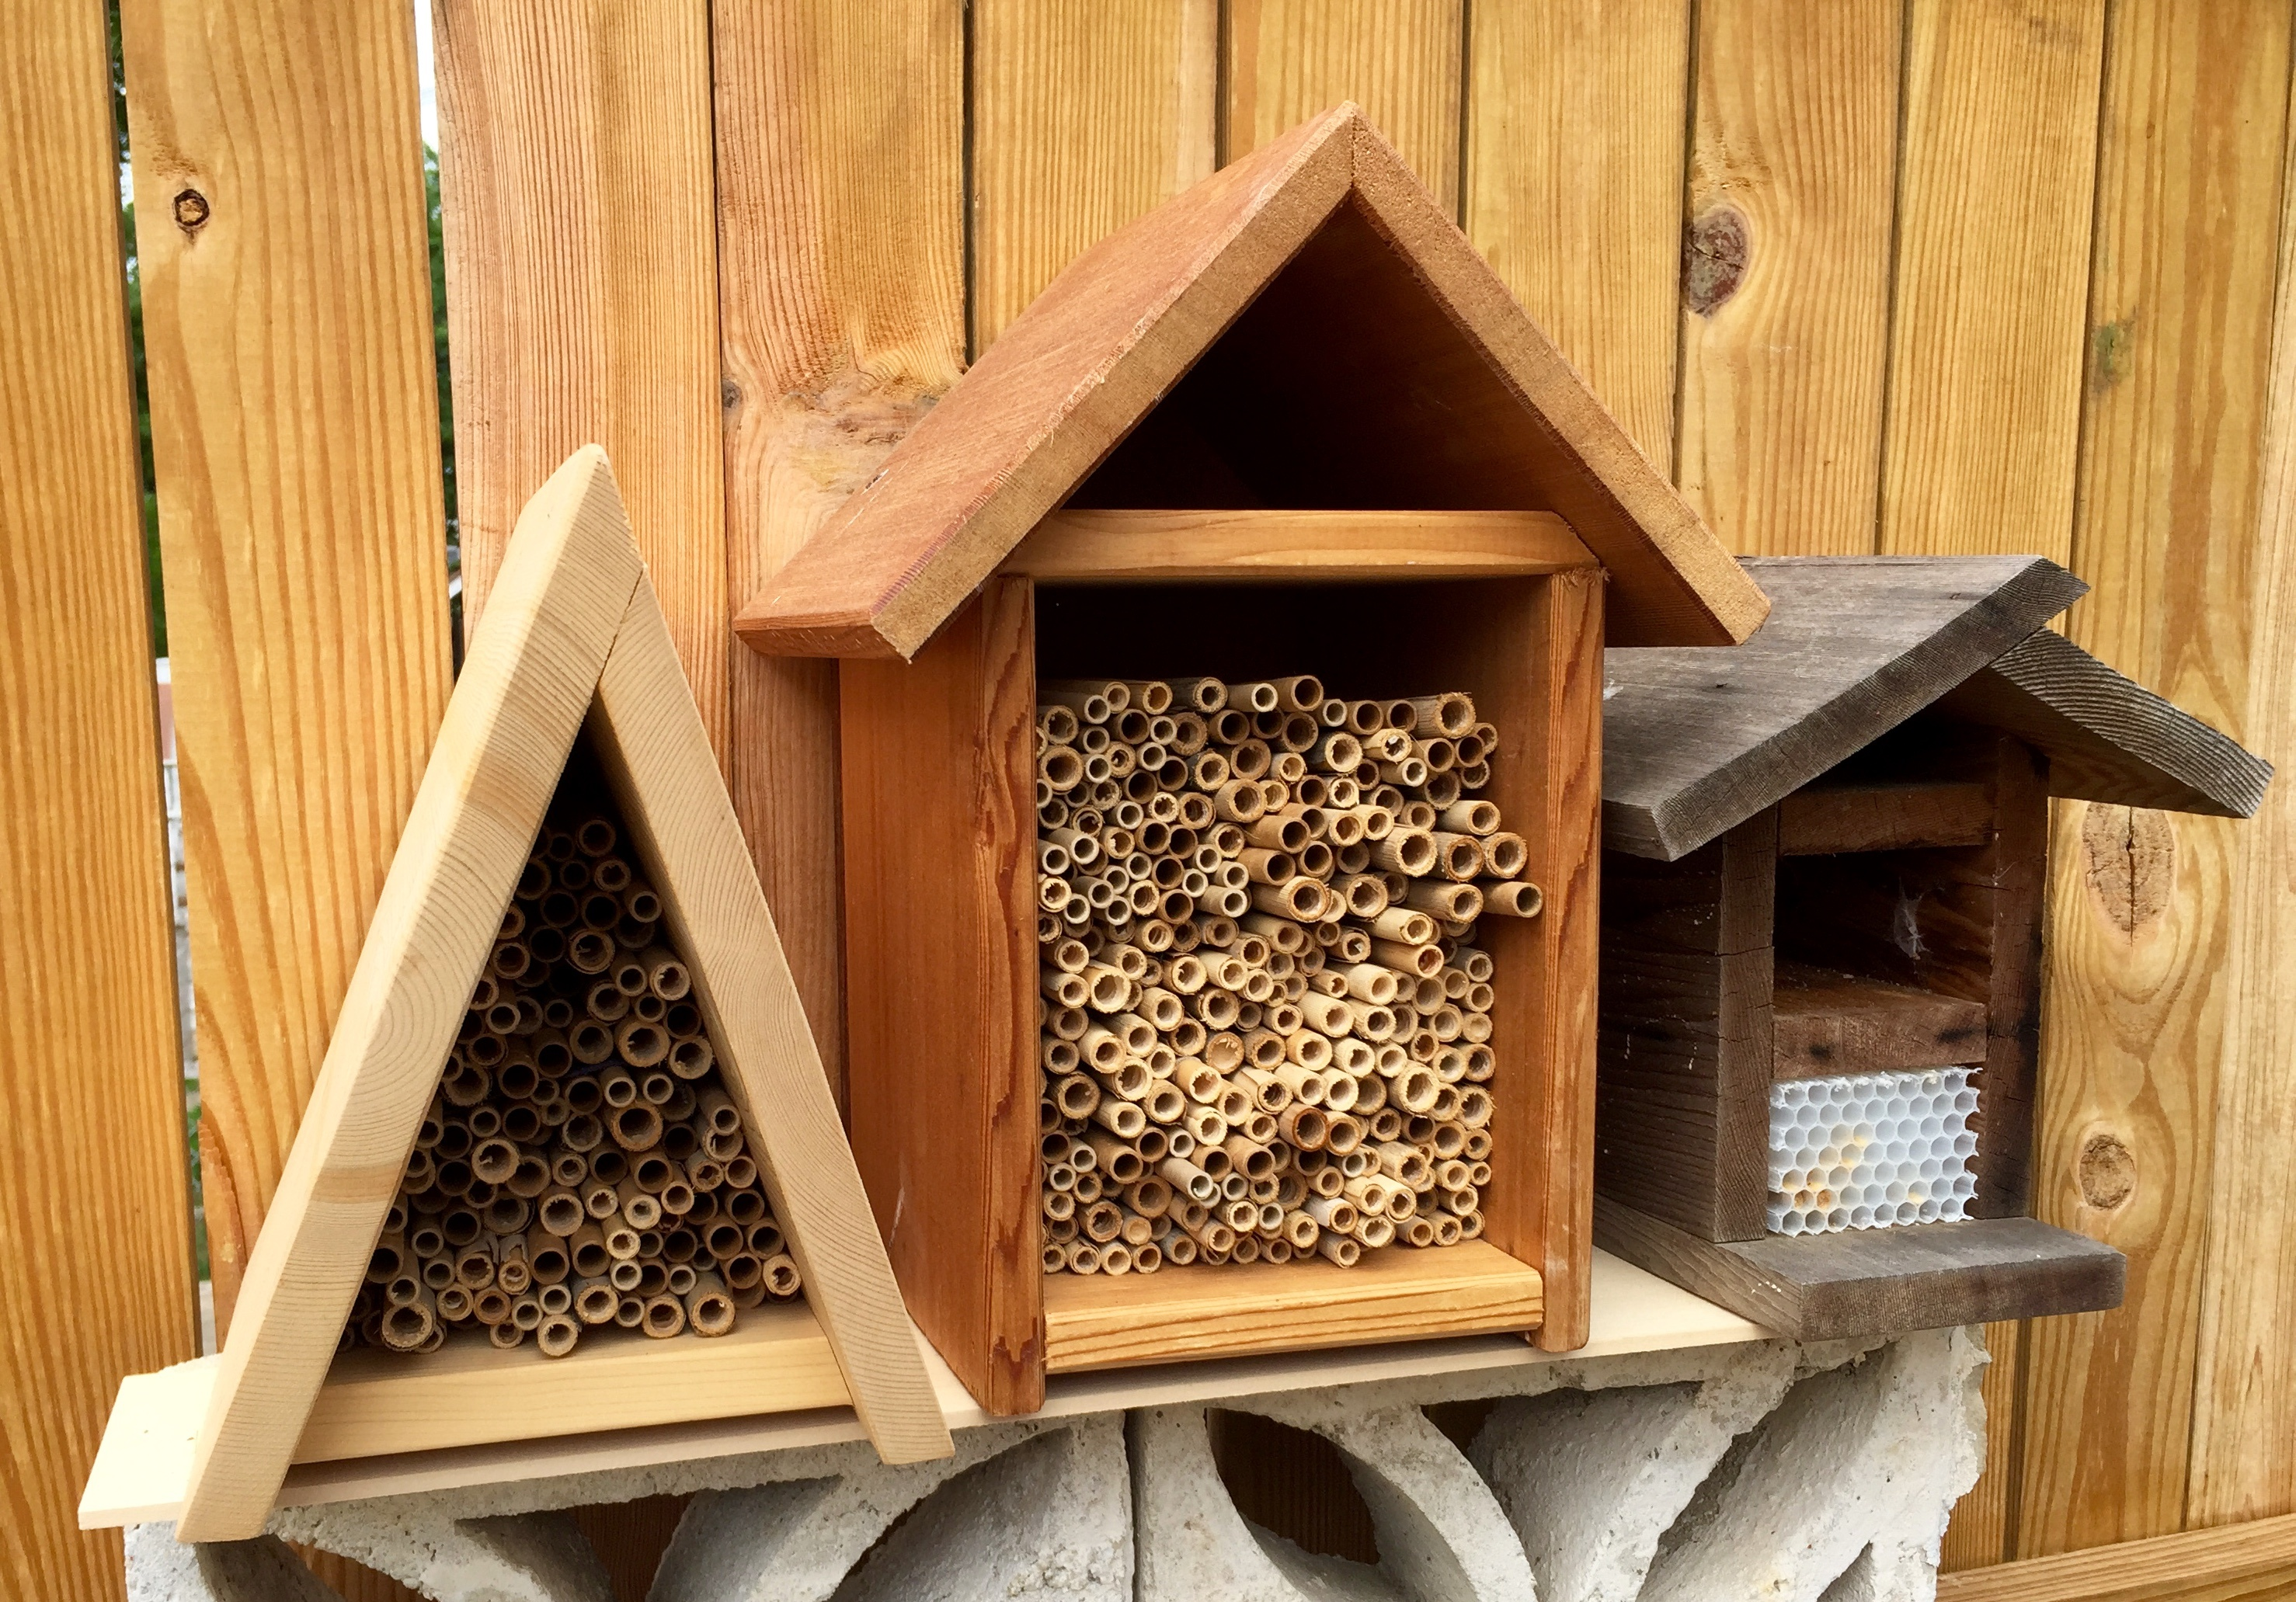 Add nesting boxes like these to give native bees a place to raise their young.